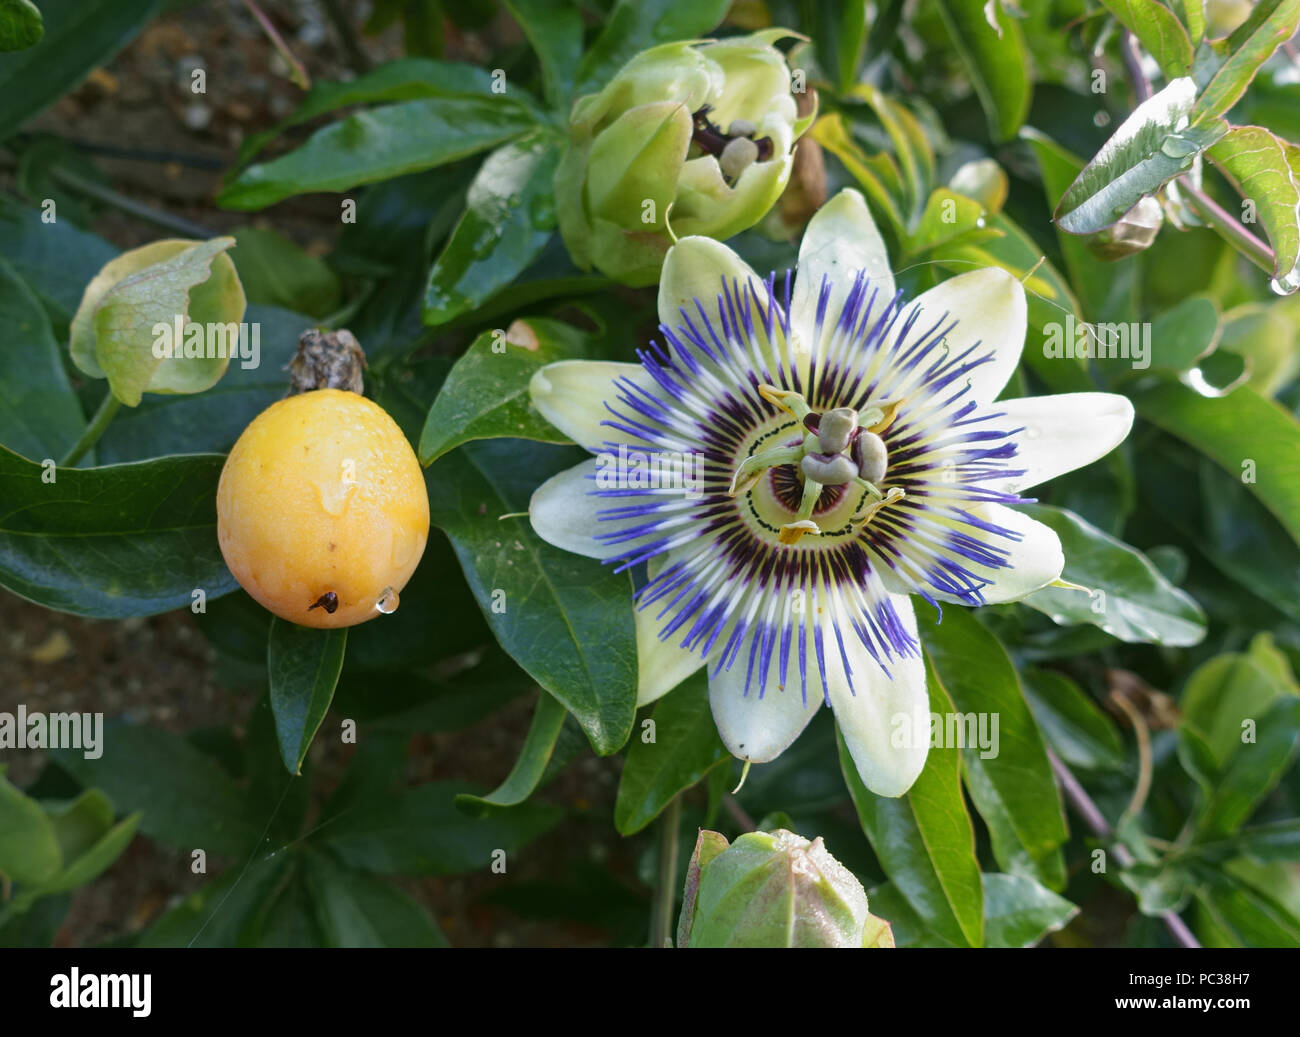 Fruit And Flower Of An Ornamental Blue Passion Flower Passiflora